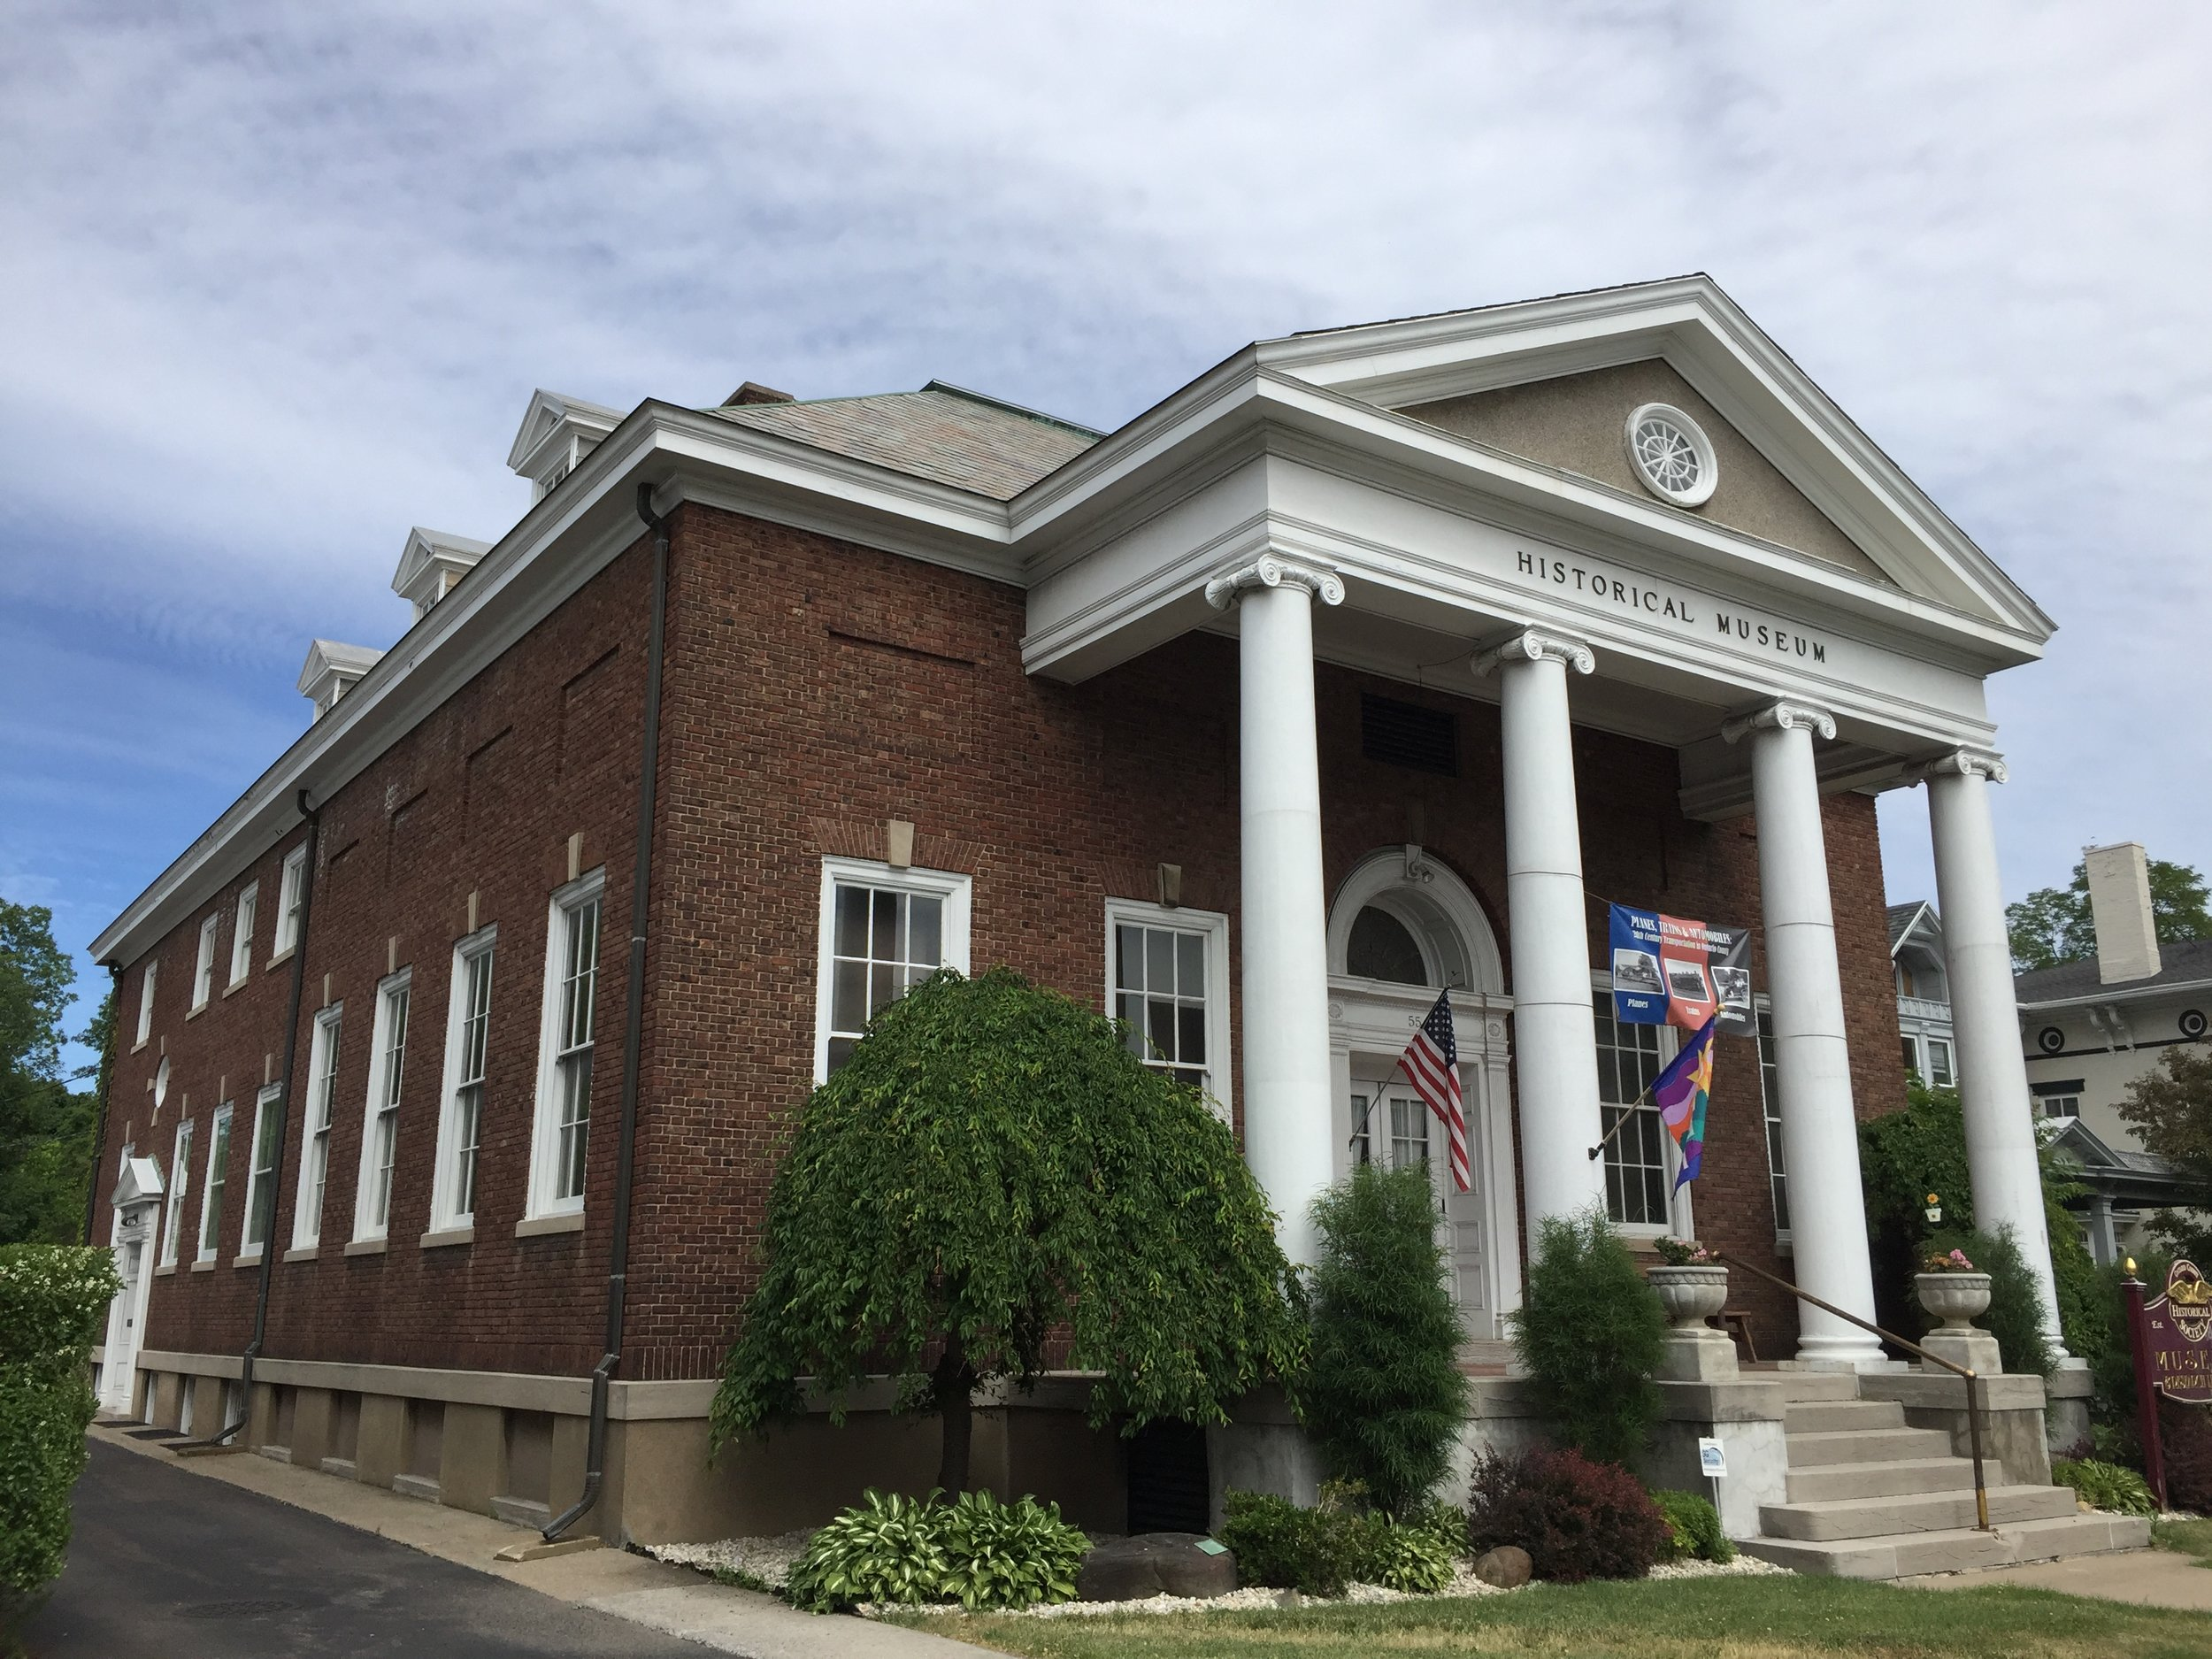 Ontario County Historical Society Museum